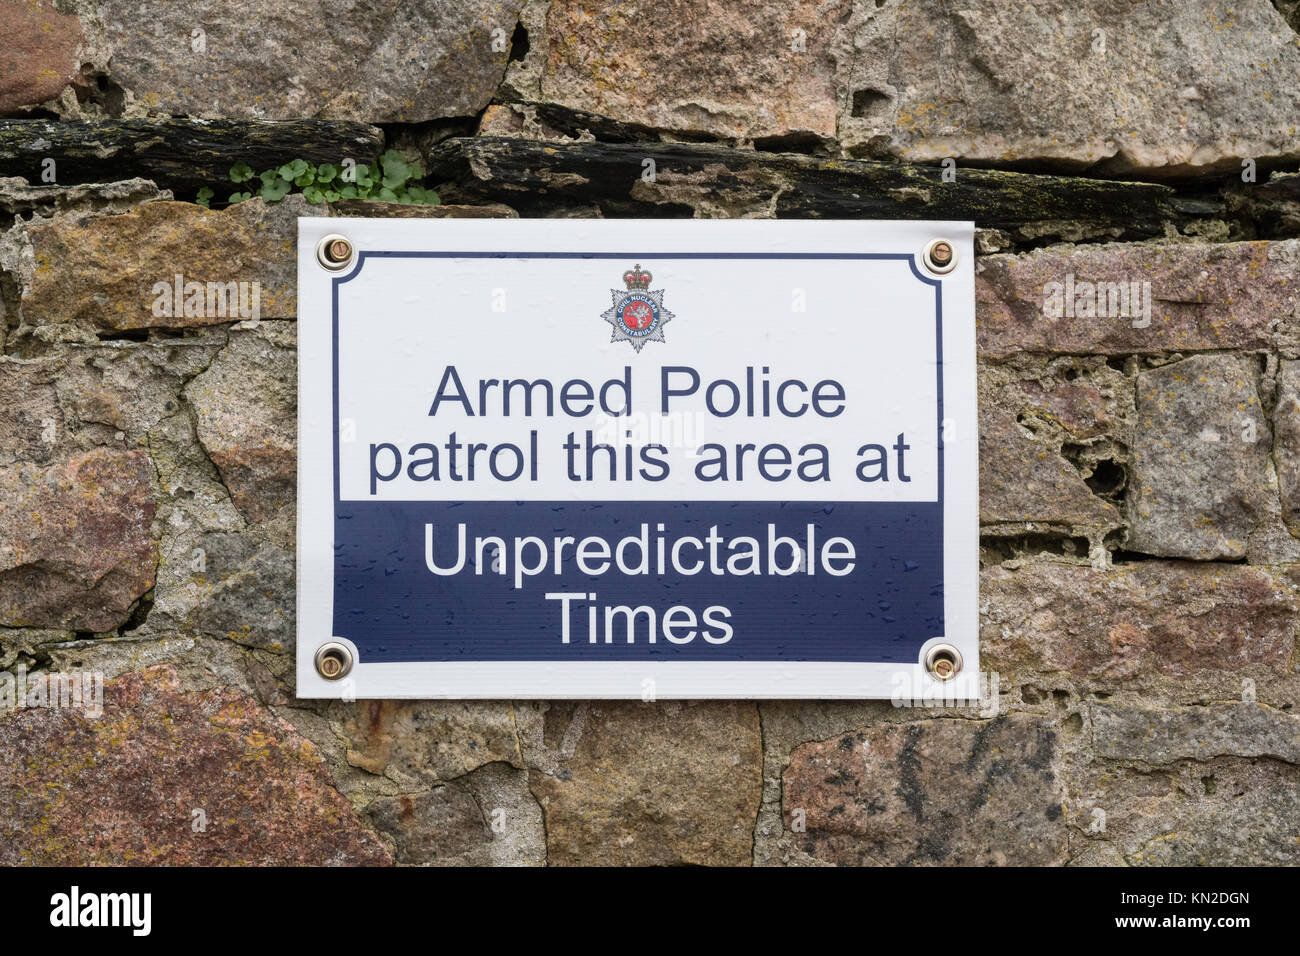 Civil Nuclear Constabulary sign - Armed Police patrol this area at Unpredictable times - in Ravenglass close to - Stock Image